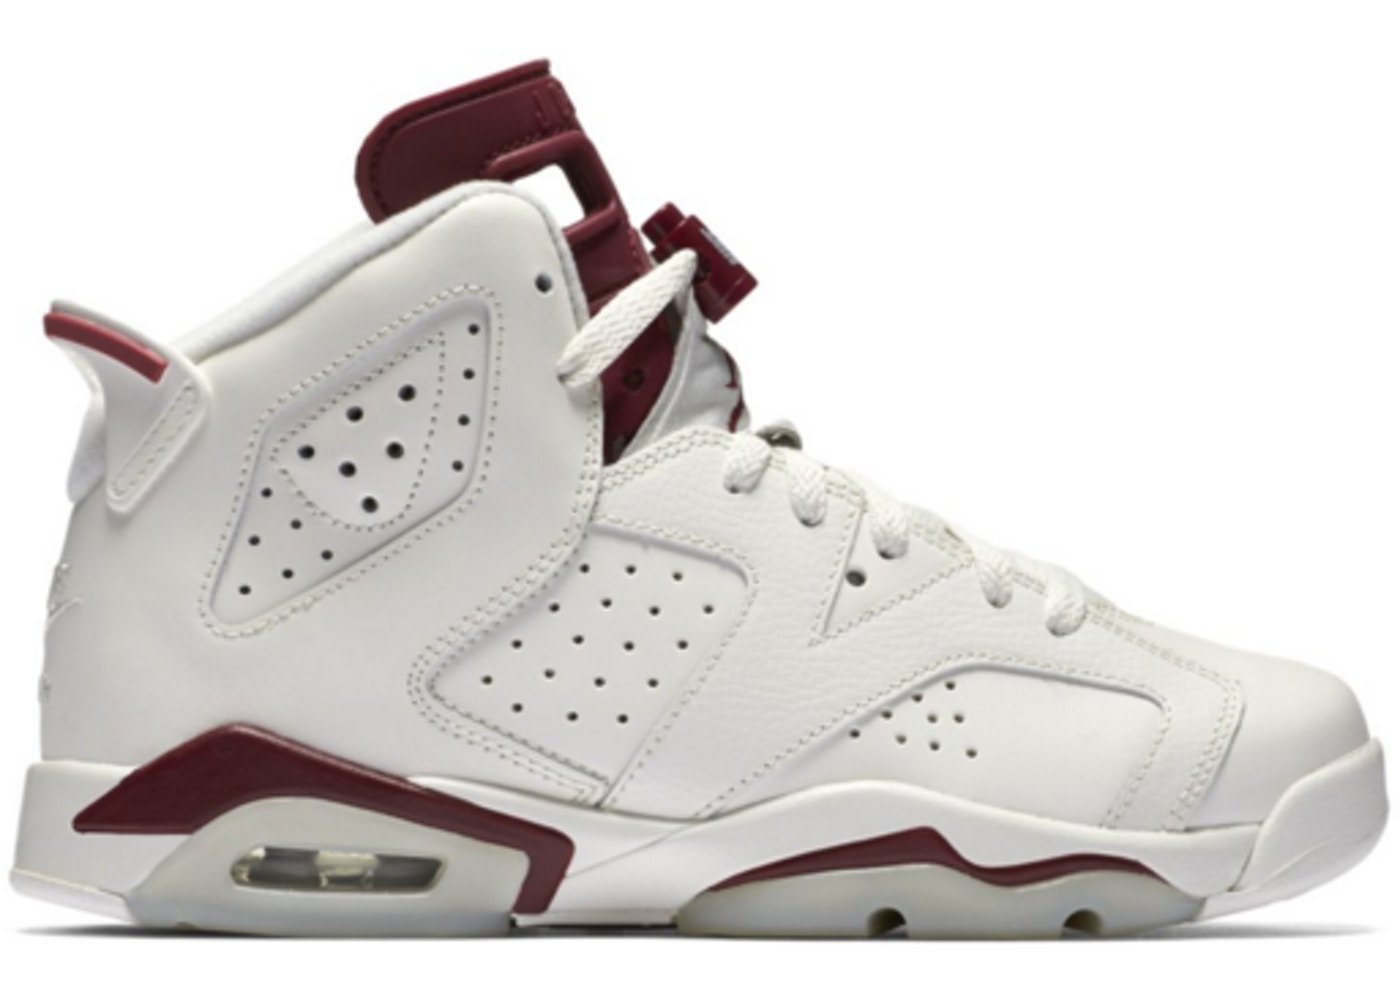 100% authentic 30779 a2209 Jordan 6 Retro Maroon 2015 (GS)